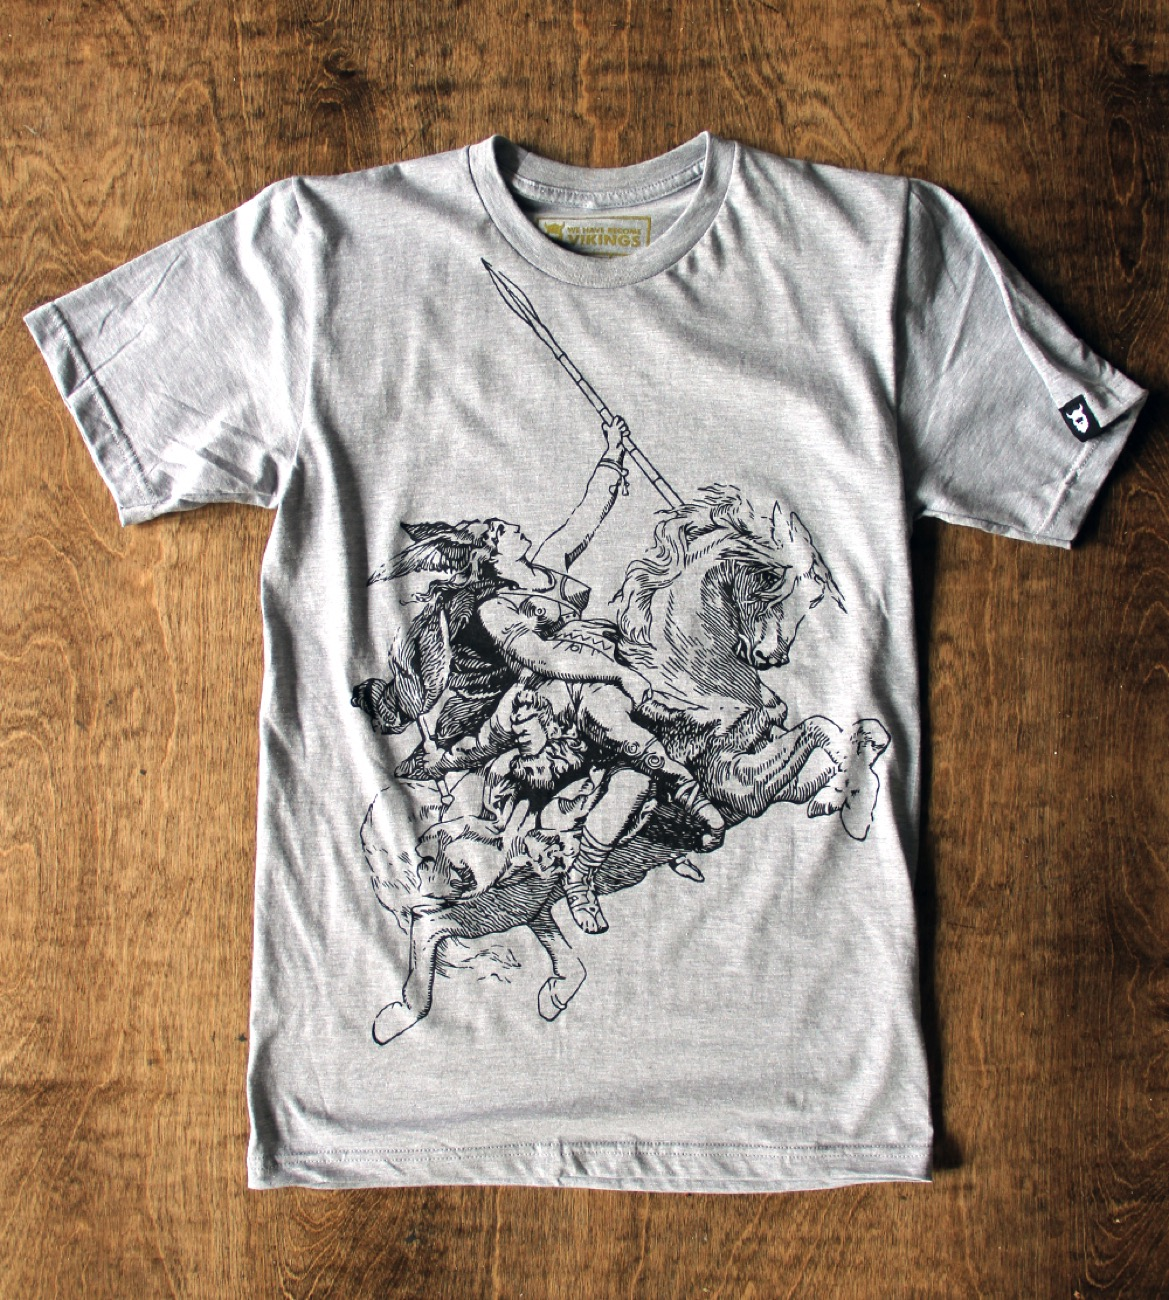 Valkyrie tee / Image courtesy of We Have Become Vikings